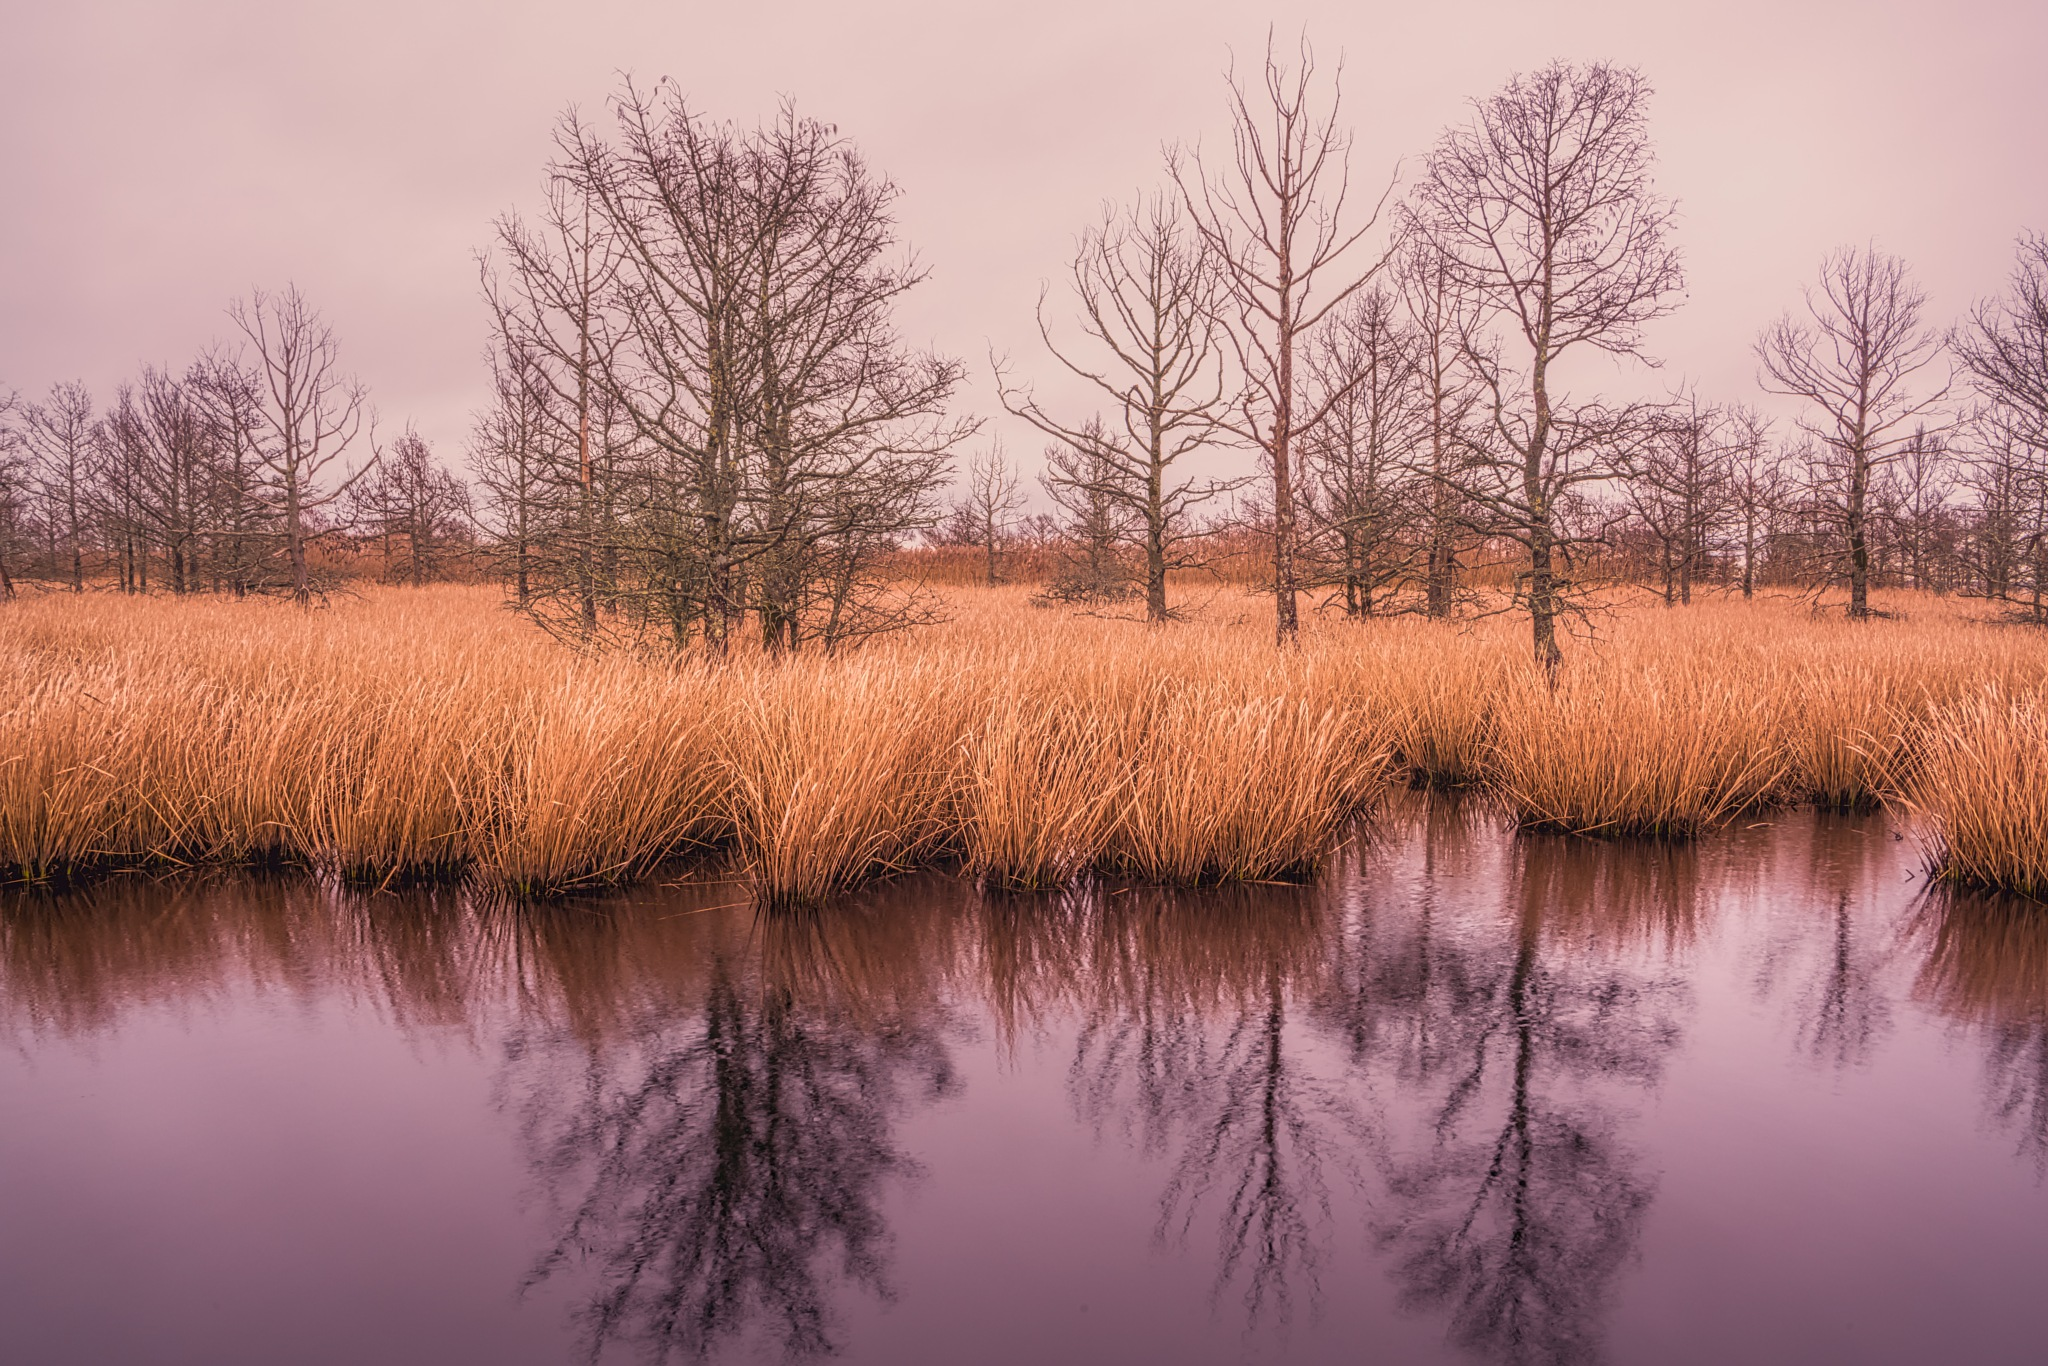 Reflections of a Overcast Day by rsmullen